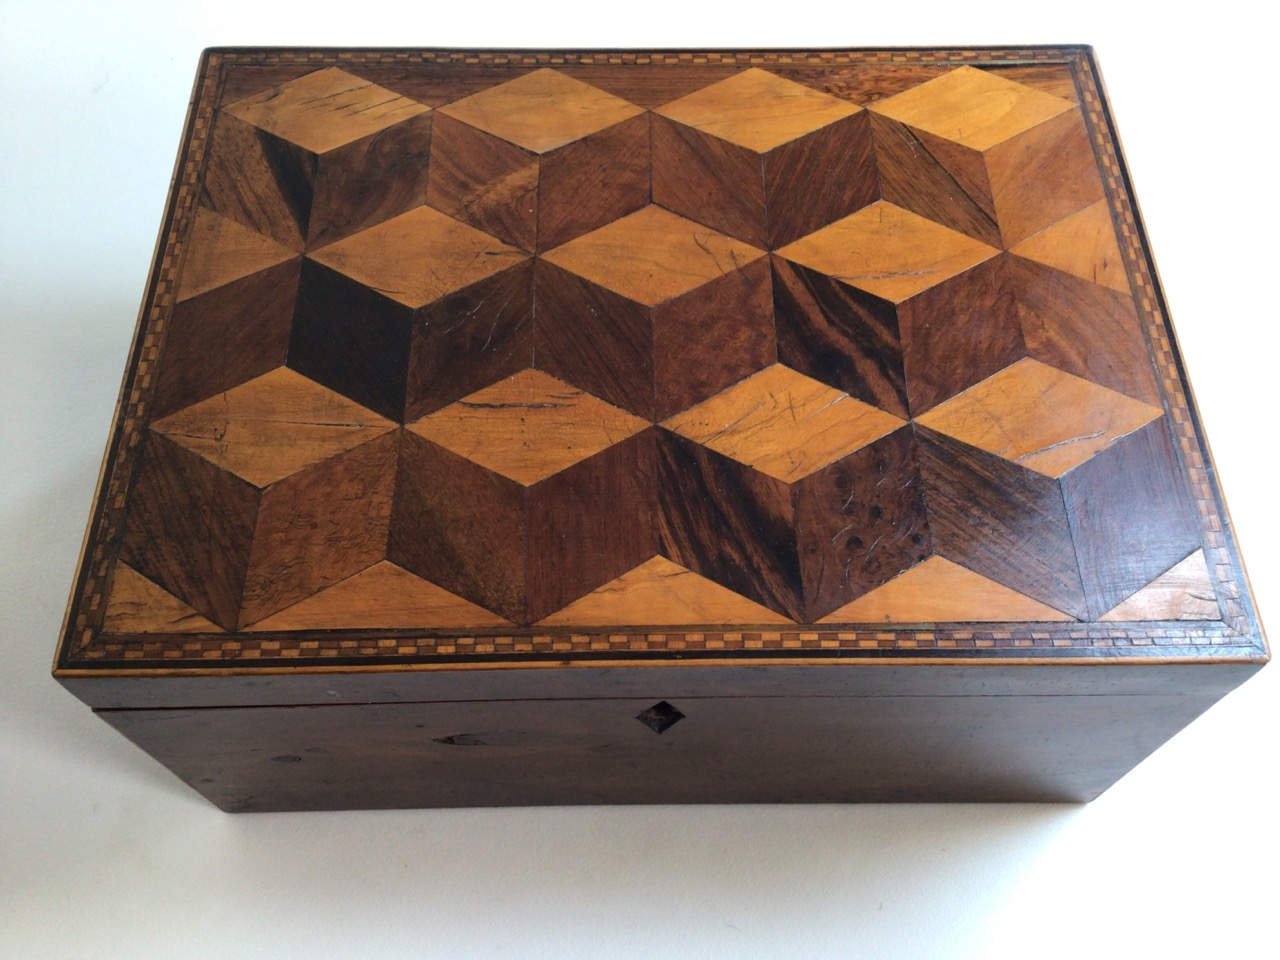 A Victorian parquetry walnut box with metal handles. W:33cm x D:24cm x H:15cm - Image 5 of 5